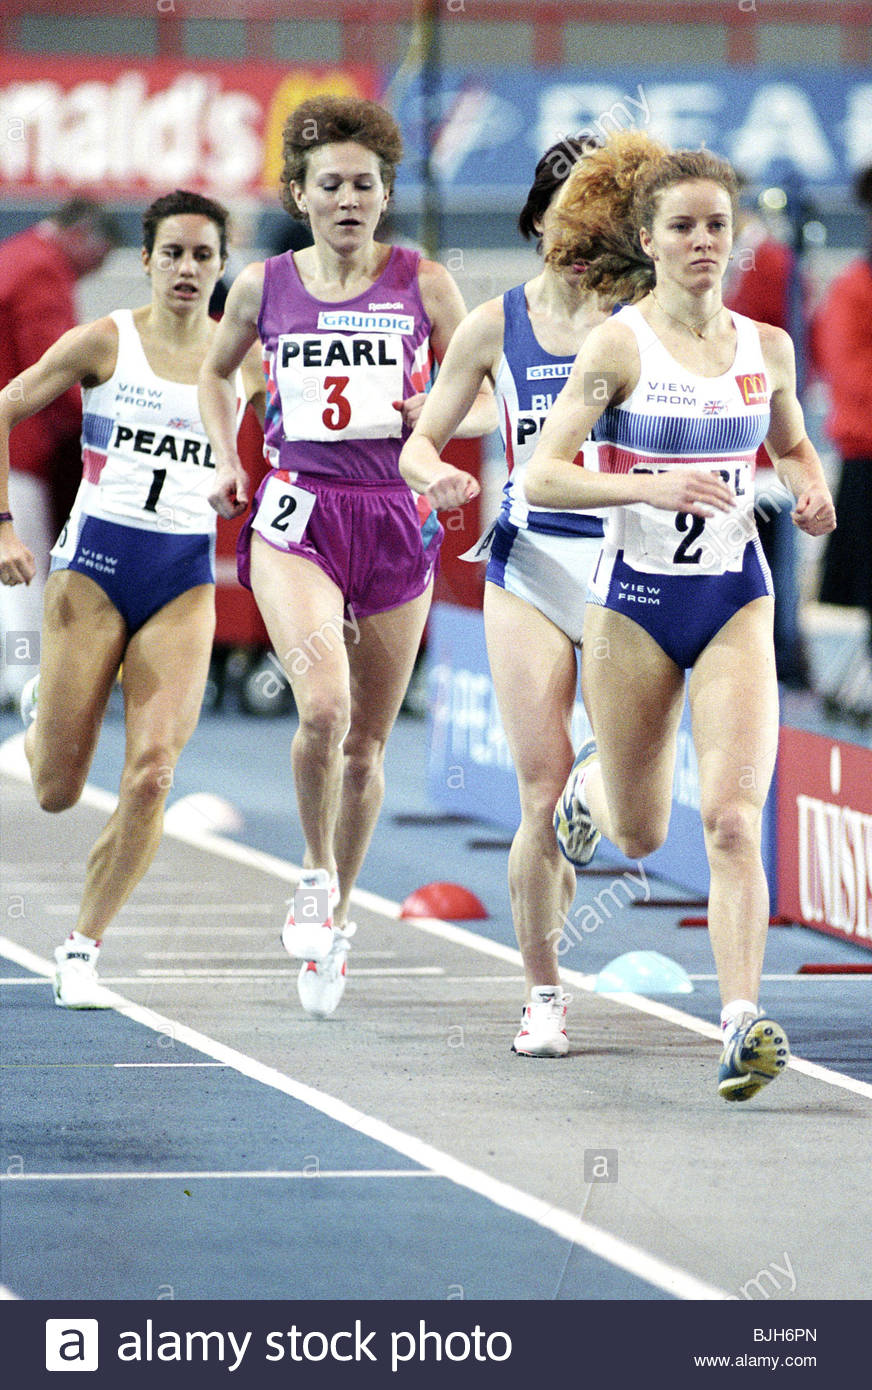 29/01/93 PEARL INTERNATIONAL ATHLETICS KELVIN HALL - GLASGOW Great Britain's Jayne Sparke (right) in action - Stock Image